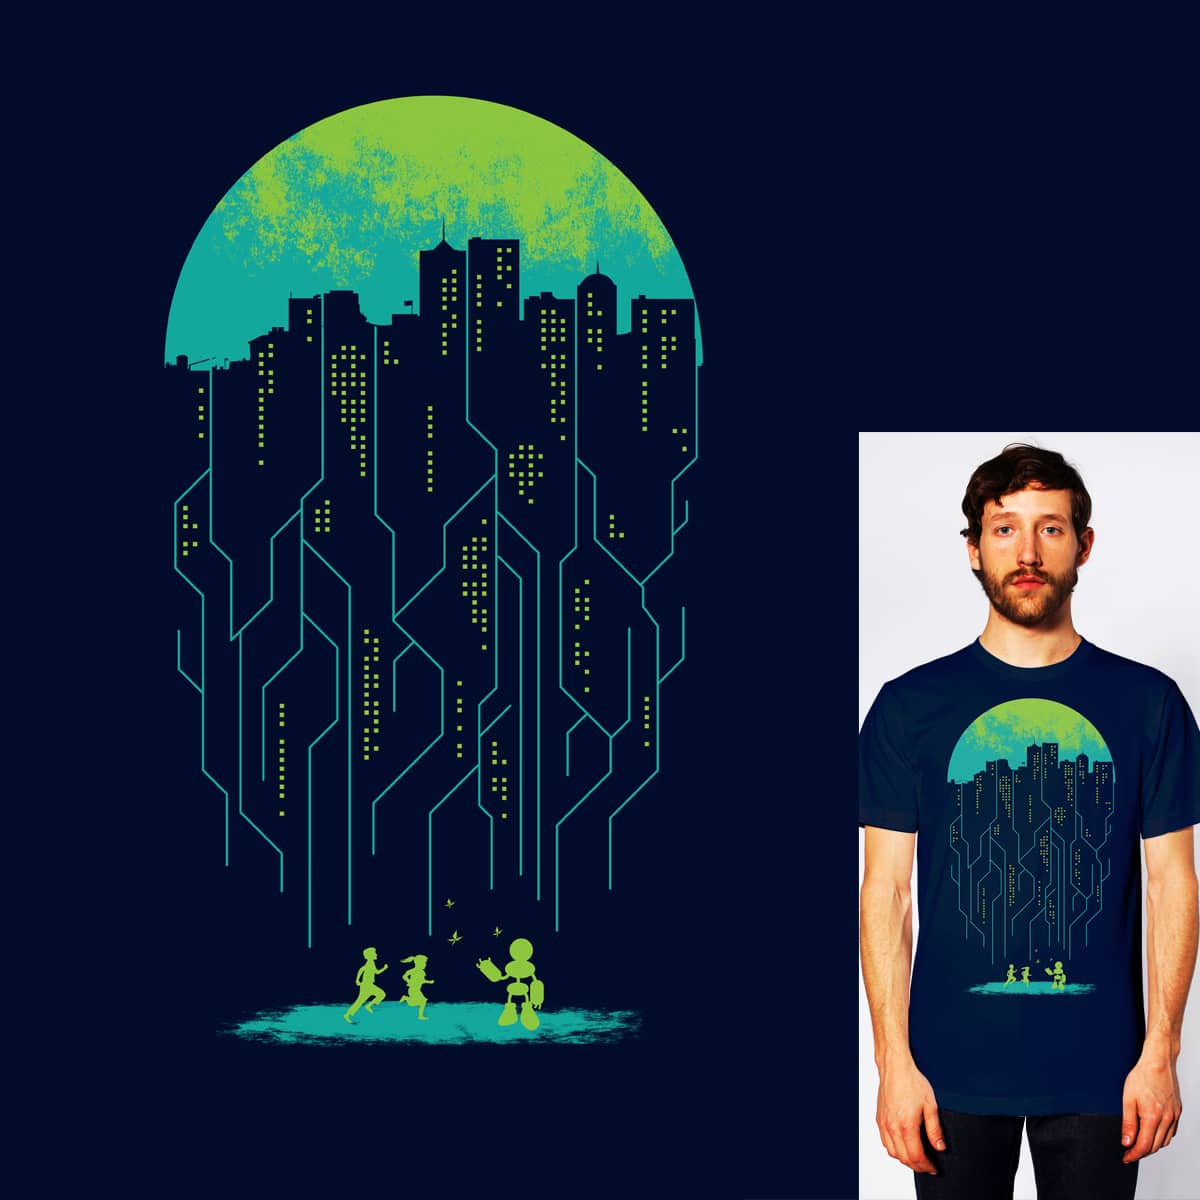 City of Future by StevenT on Threadless